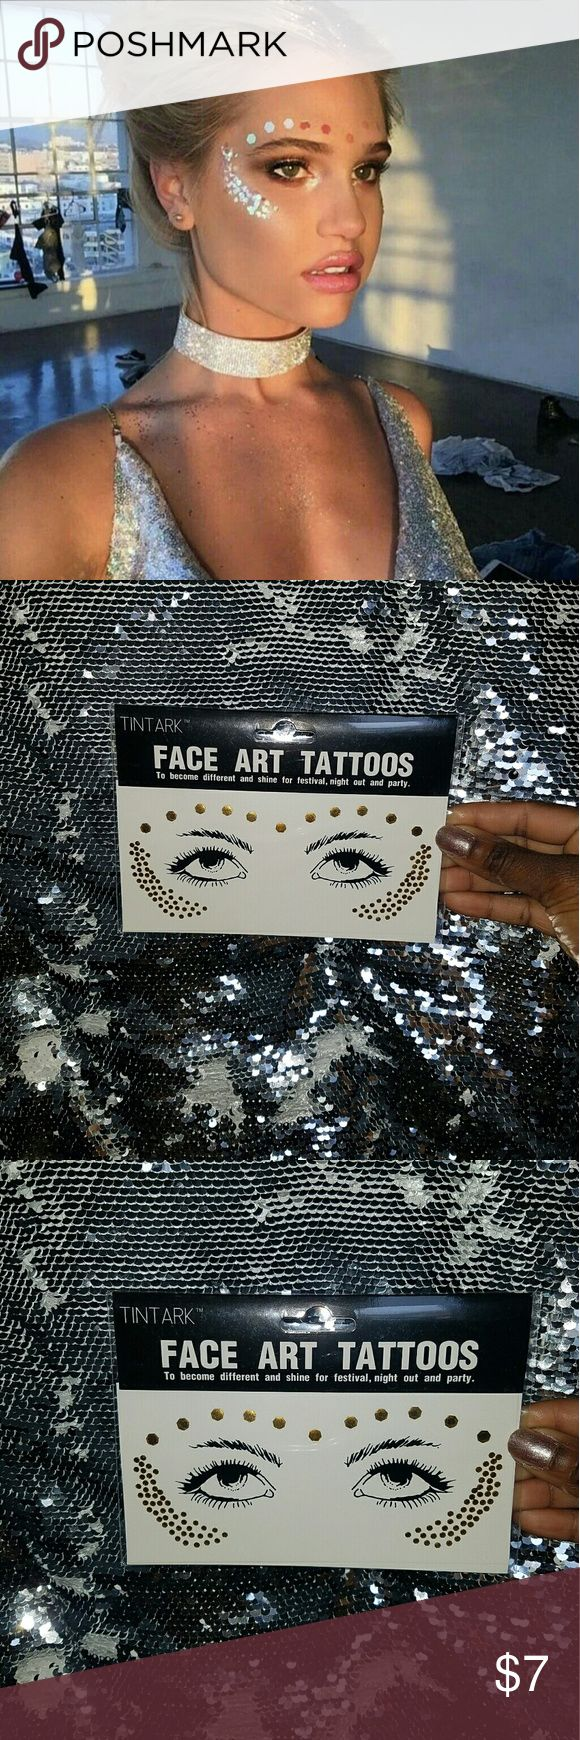 Gold temporary face tattoo 100% brand new and high quality  1pc tattoo sticker  *Warning* ❌ Sensitive skin ❌Pregnant women  ❌Children under 3 years of age  ❌Do not put close to eyes Accessories